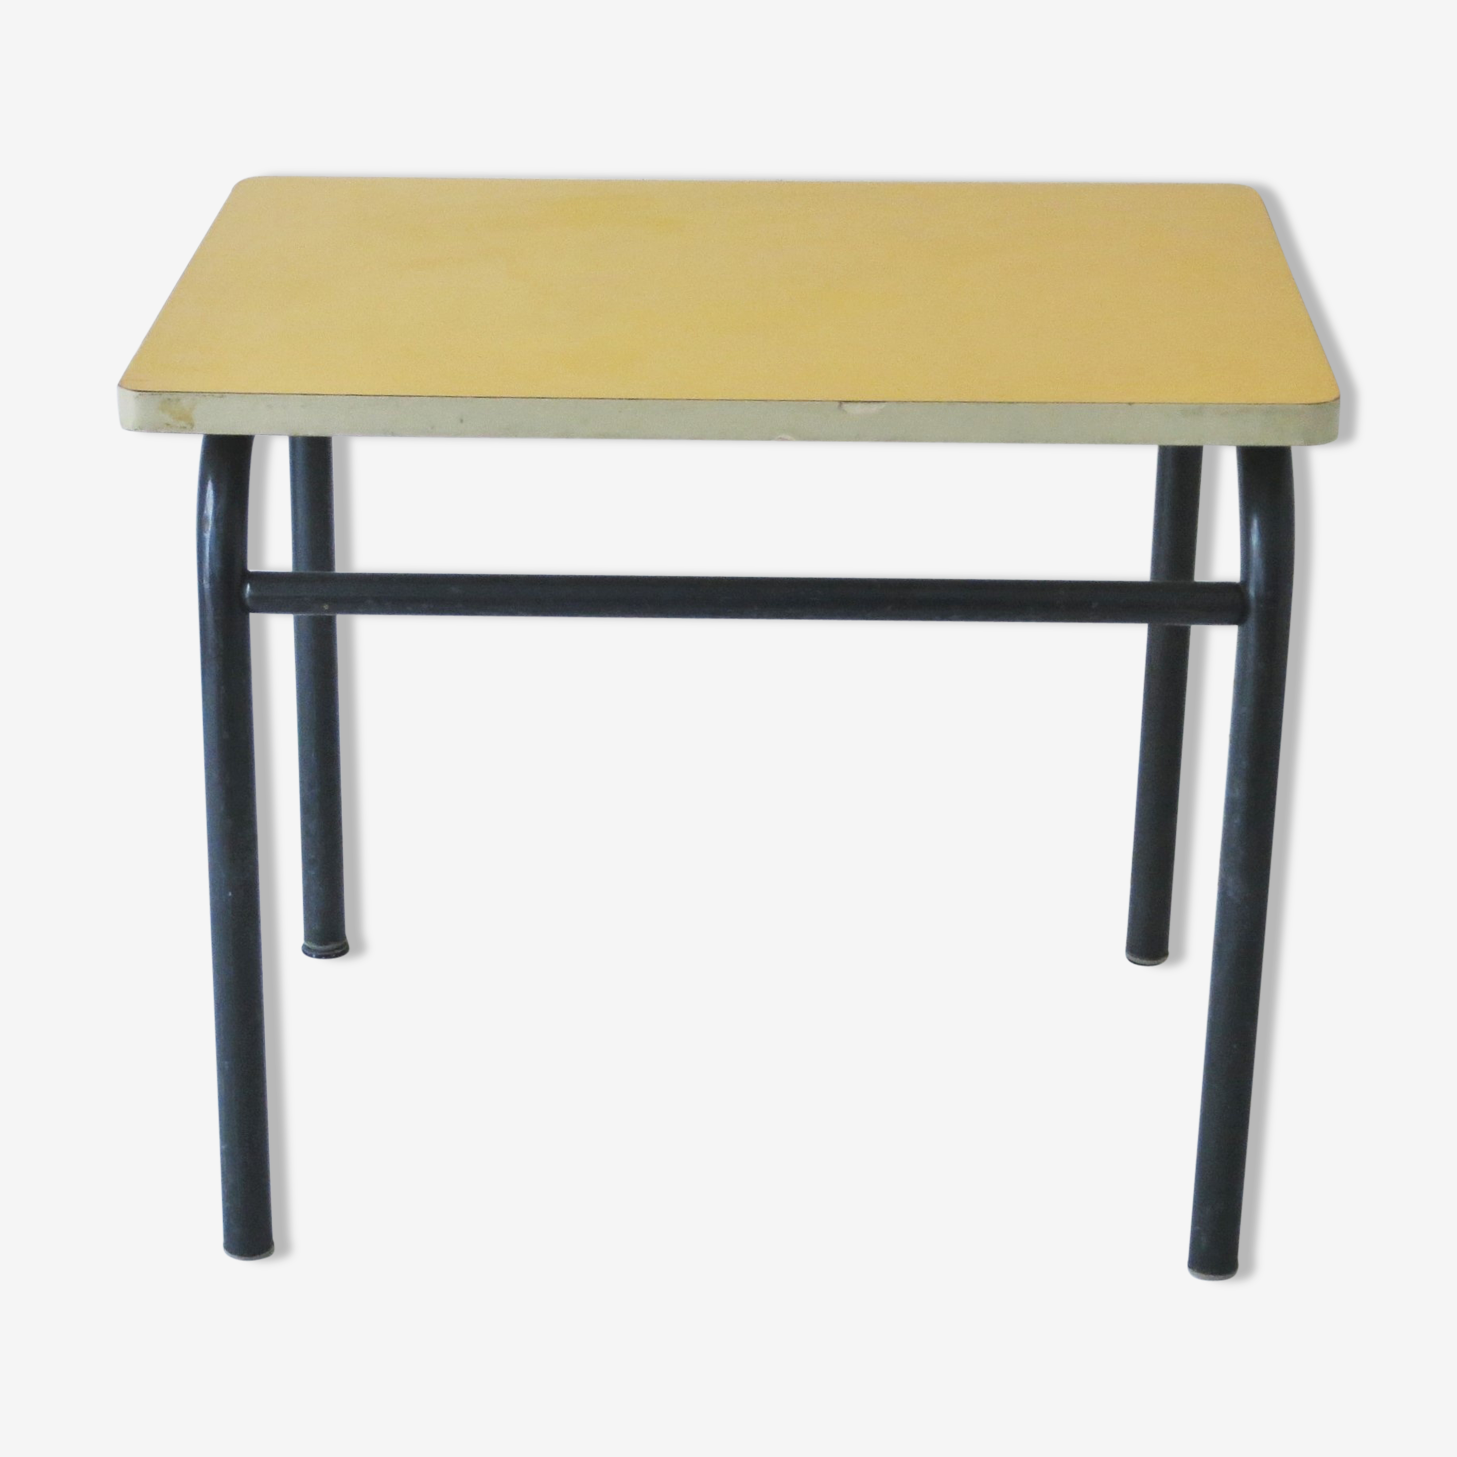 Table d'écolier jaune